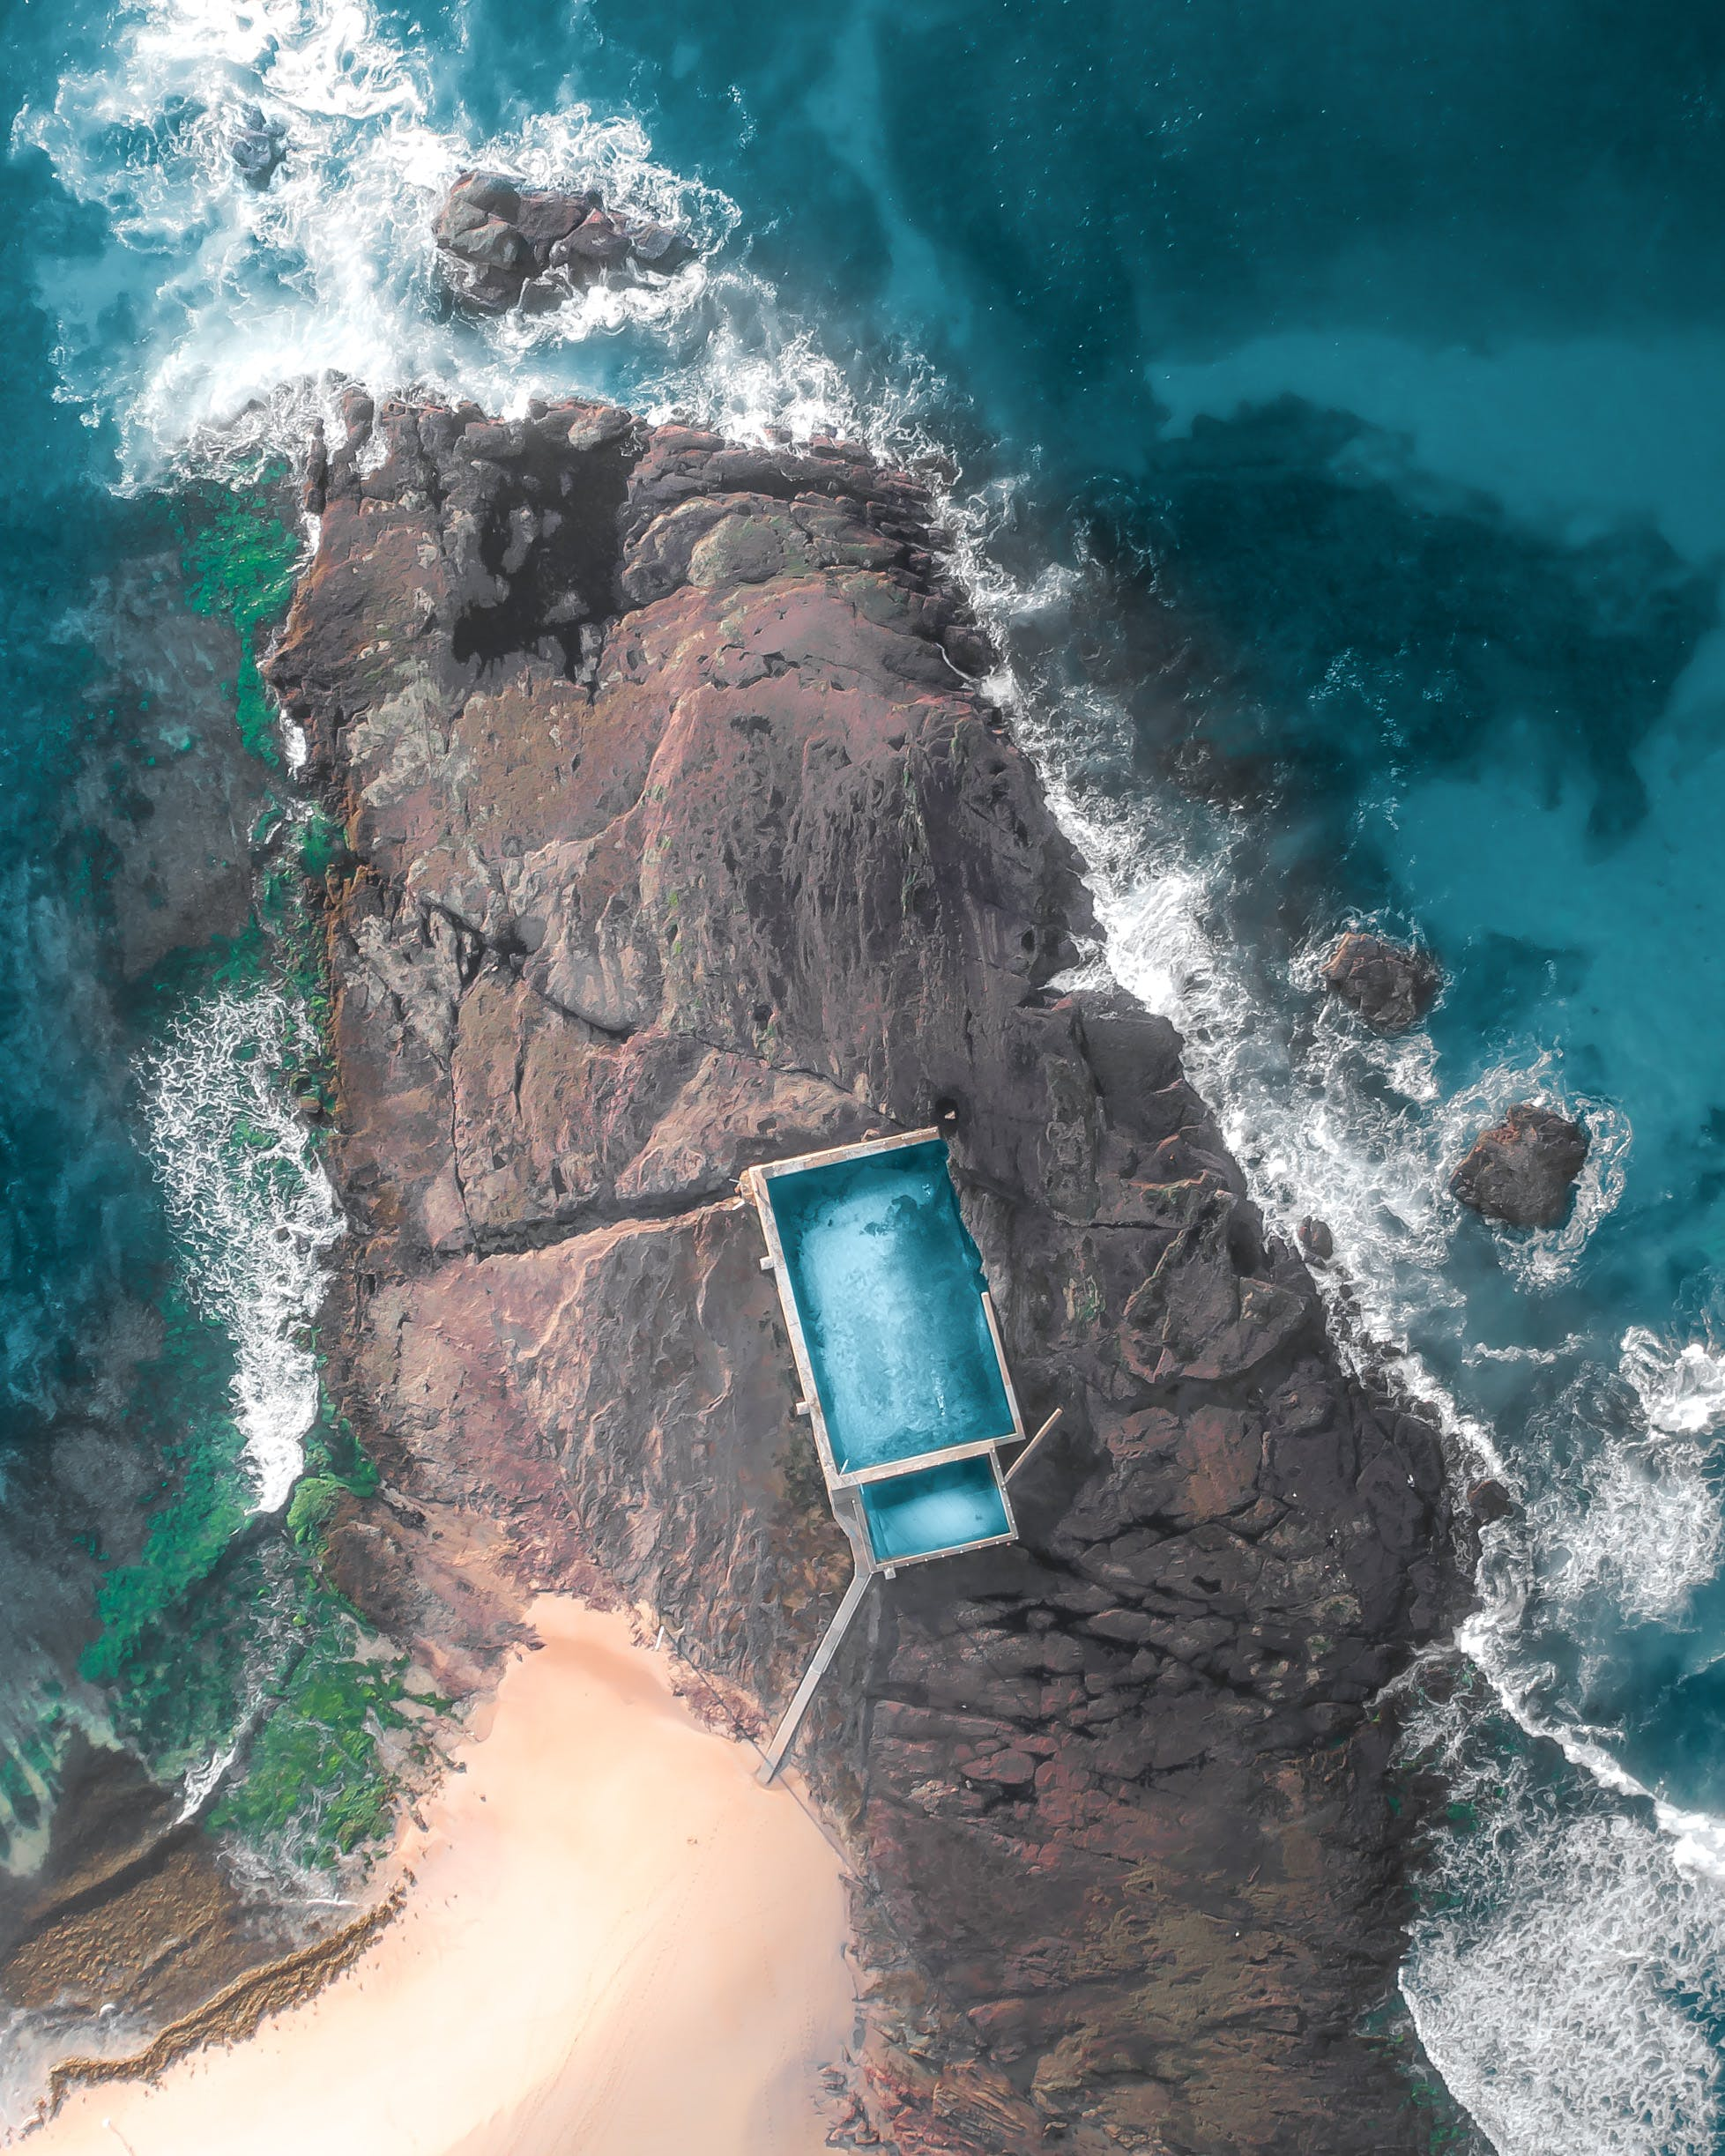 Aerial Photography of Teal and White House on Rock Formation Near Body of Water